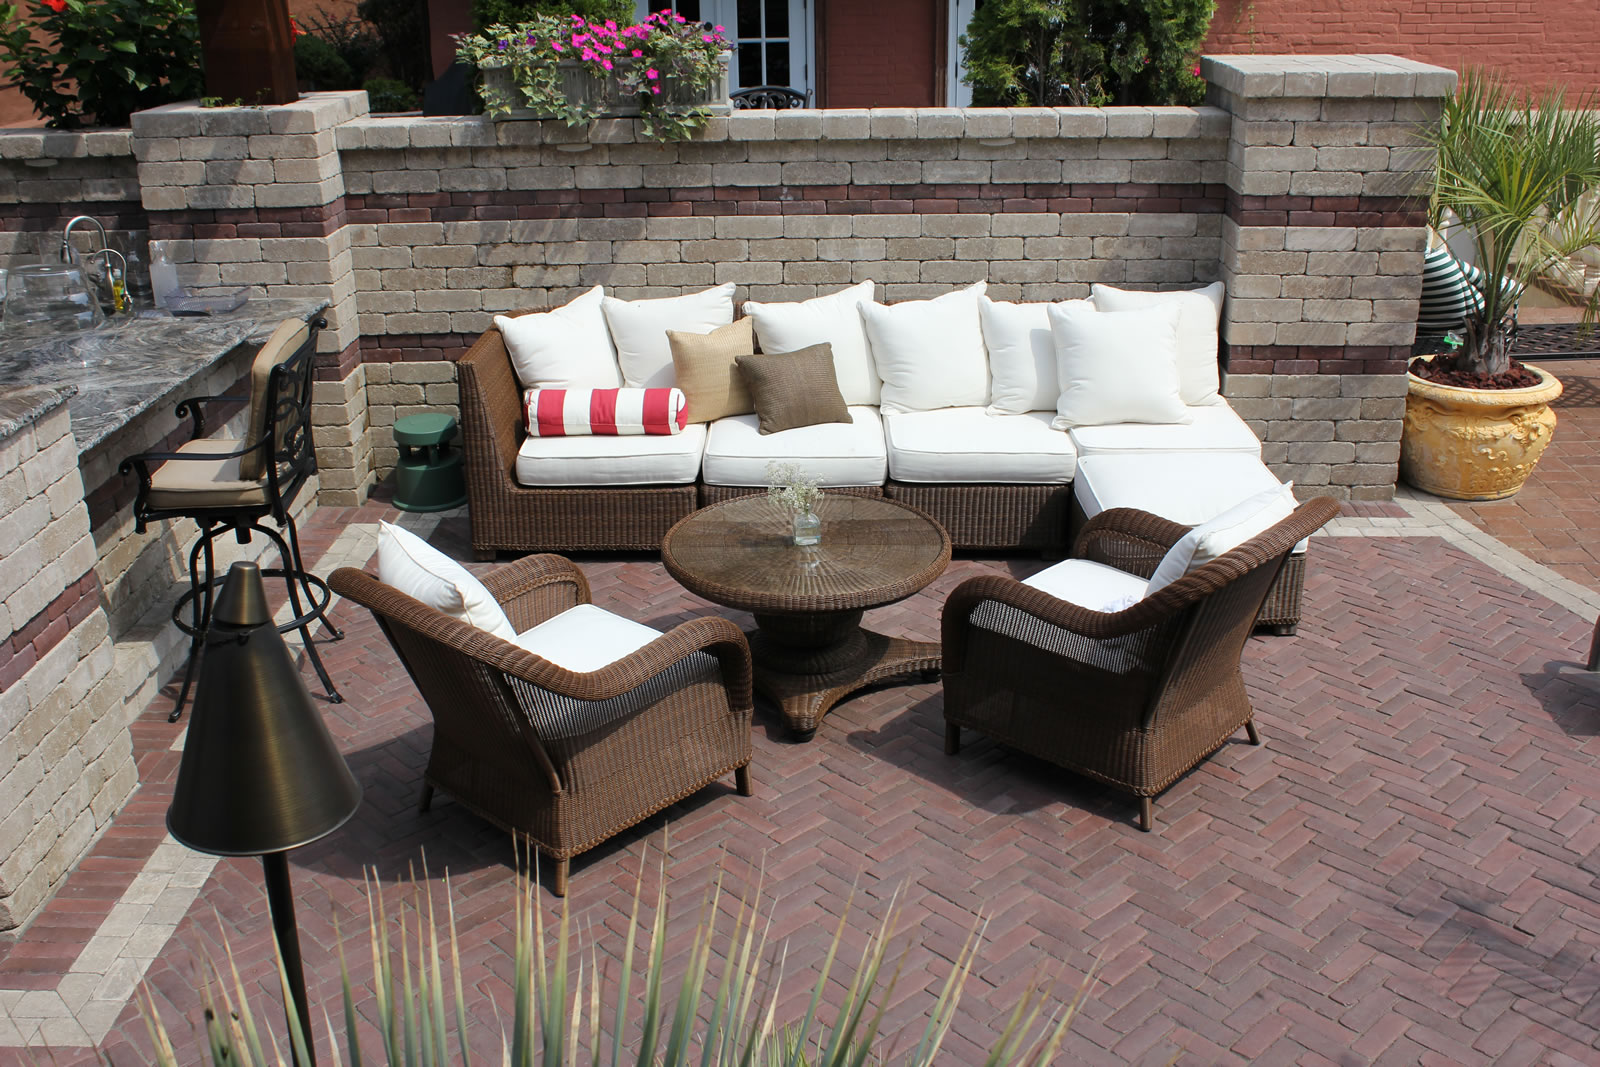 3 Landscape Design Ideas for Making Your Oyster Bay, NY, Patio Feel More Secluded